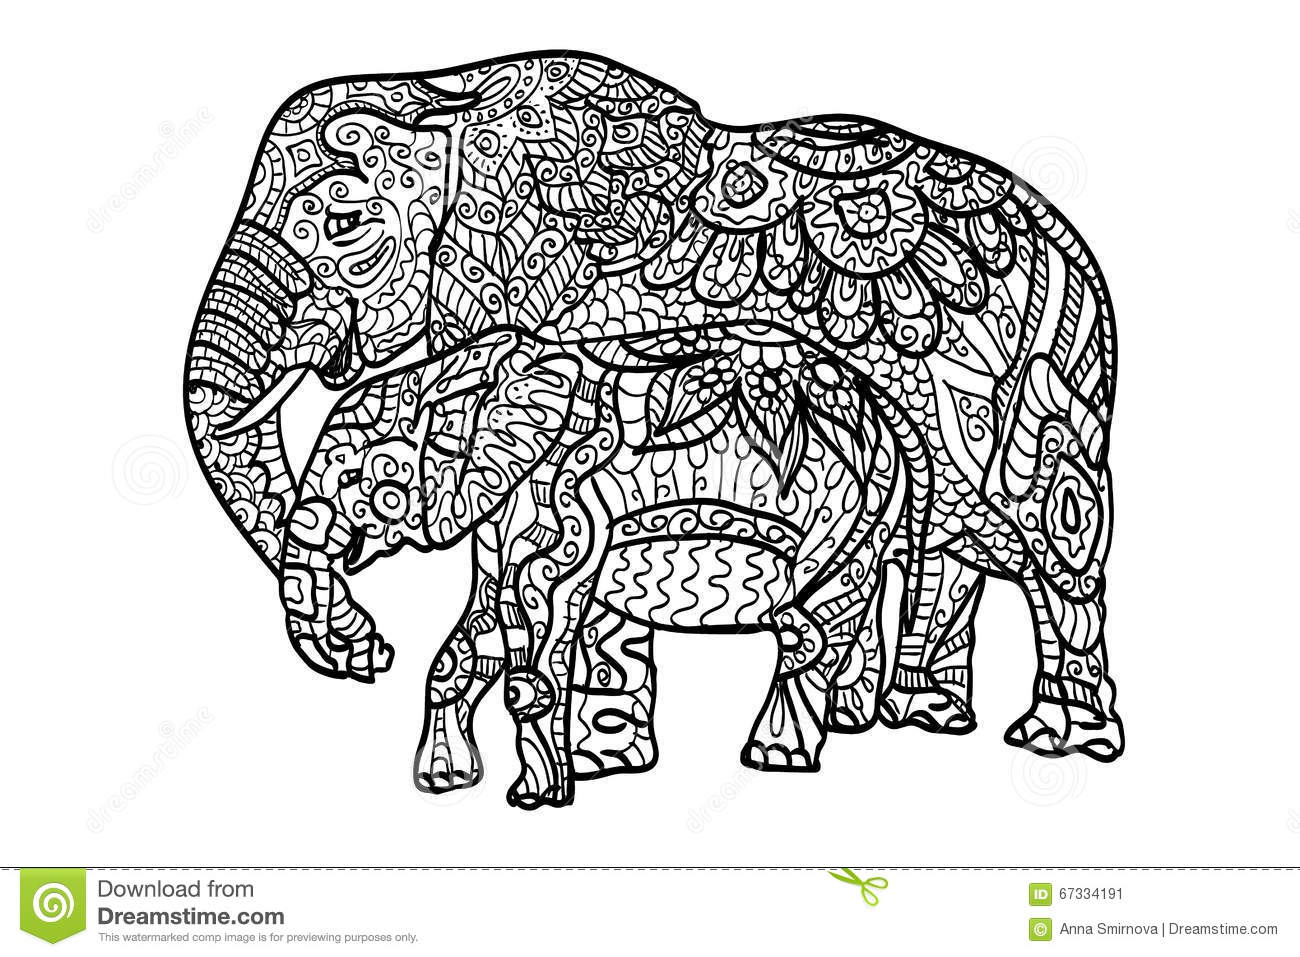 relaxation animal coloring pages relaxing coloring elephants stock illustration coloring relaxation animal pages